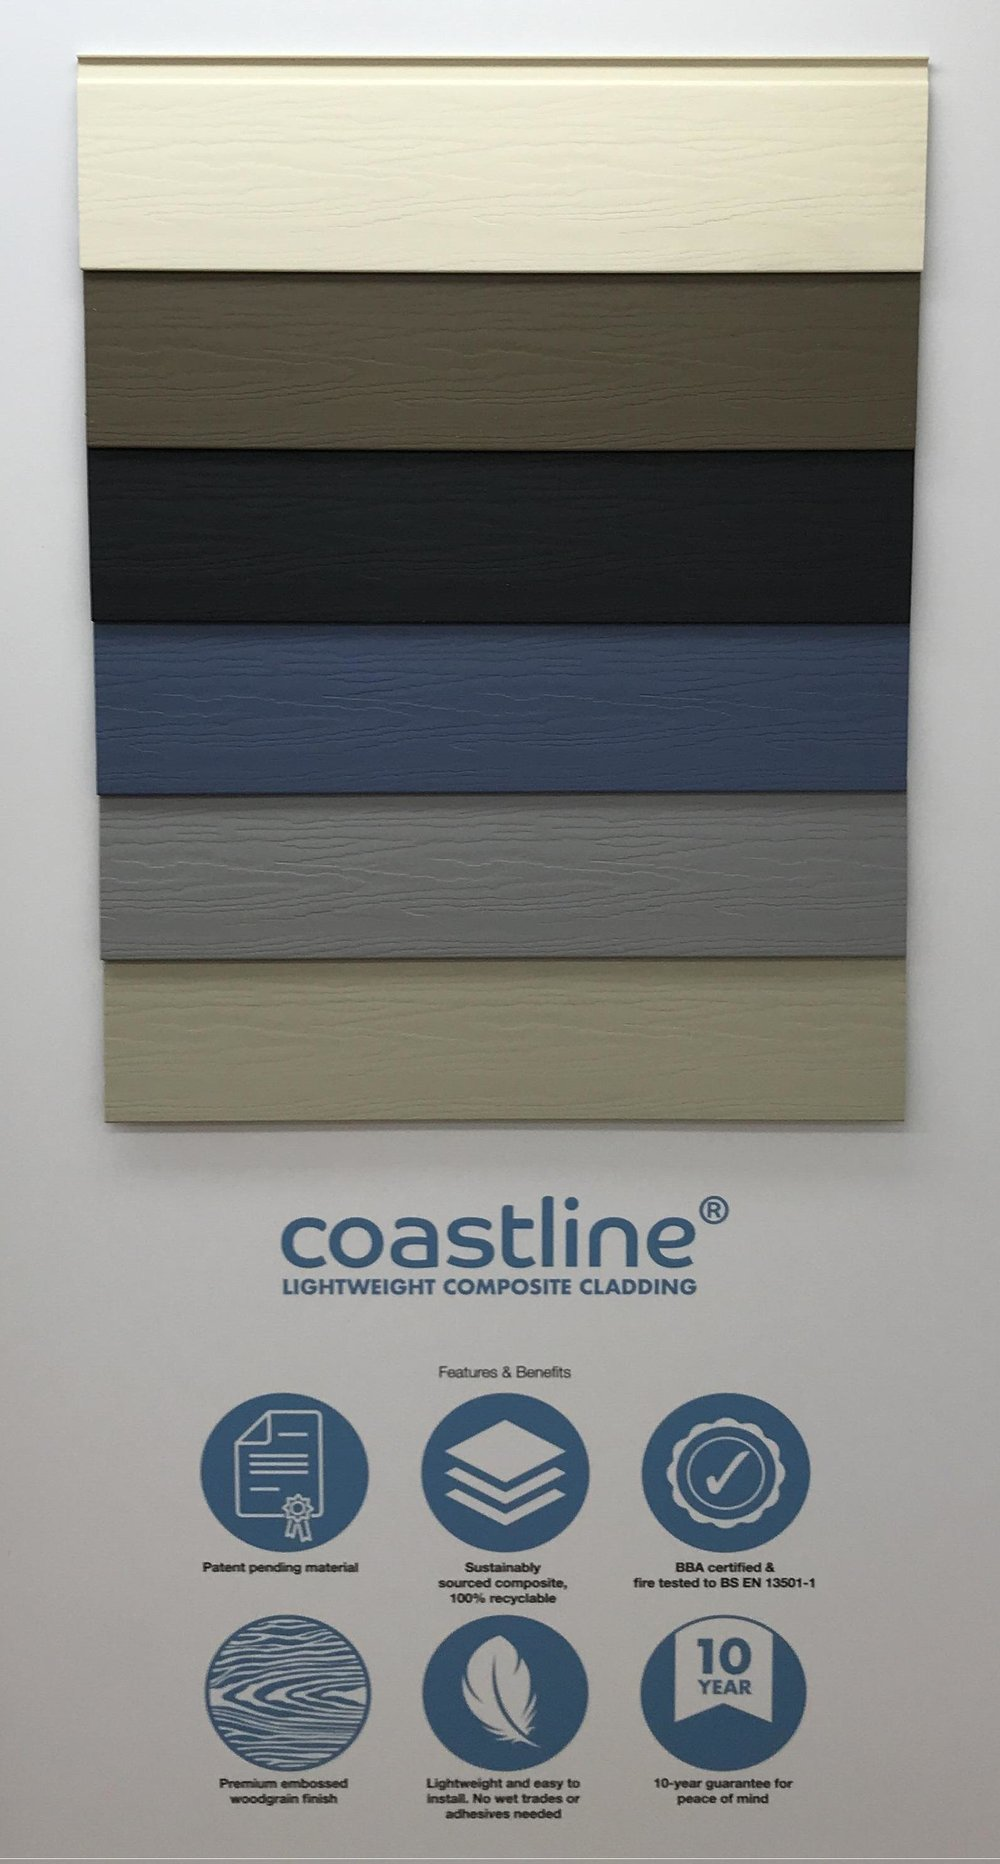 - What's more it doesn't just protect and preserve the fabric of the building. It does it in true style, with a range of six attractive New England colours: Anthracite Grey, Moondust Grey, Pigeon Blue, Oyster White, Soft Green and Taupe. A contemporary matt embossed woodgrain finish adds to the authentic timber facade effect. Unlike timber, Coastline is virtually maintenance-free, will not rot or warp and is pest and insect resistant. It's specially developed colour-coordinated and full powder-coated aluminium trims and end closers means installation is both quick and easy, with no wet trades or adhesives needed. Suitable for buildings up to 18m tall, it is BBA certified and fire tested in the UK by Exova Warringtonfire to conform to BS EN 13501 (Fire Classification for Construction Products).Quick and simple to install, Coastline employs a simple interlocking mechanism that fixes to standard timber battens with no membranes required while coordinating aluminium trims and end closers, combined with silicone sealants in complementary colours, create the perfect finish in every installation.As the next generation of cladding, Coastline is both maintenance-free and less harmful to the environment than alternative cladding systems as it contains no organic material so it will never absorb moisture, never rot and never attract insects that could damage its fabric. Unlike cement boards, Coastline is lightweight, fade-resistant, 100% recyclable and will not release harmful silica dust when cut to length. Paint and preservative treatments contain volatile chemicals that are potentially harmful to the environment but Coastline will never need them – all it takes to bring it back to its brilliant best is the occasional clean with a garden hose.Also, with ongoing issues around the supply of traditional materials such as bricks, building designers and contractors are increasingly seeking alternatives that are widely available in the UK and not reliant on imports. Coastline fits